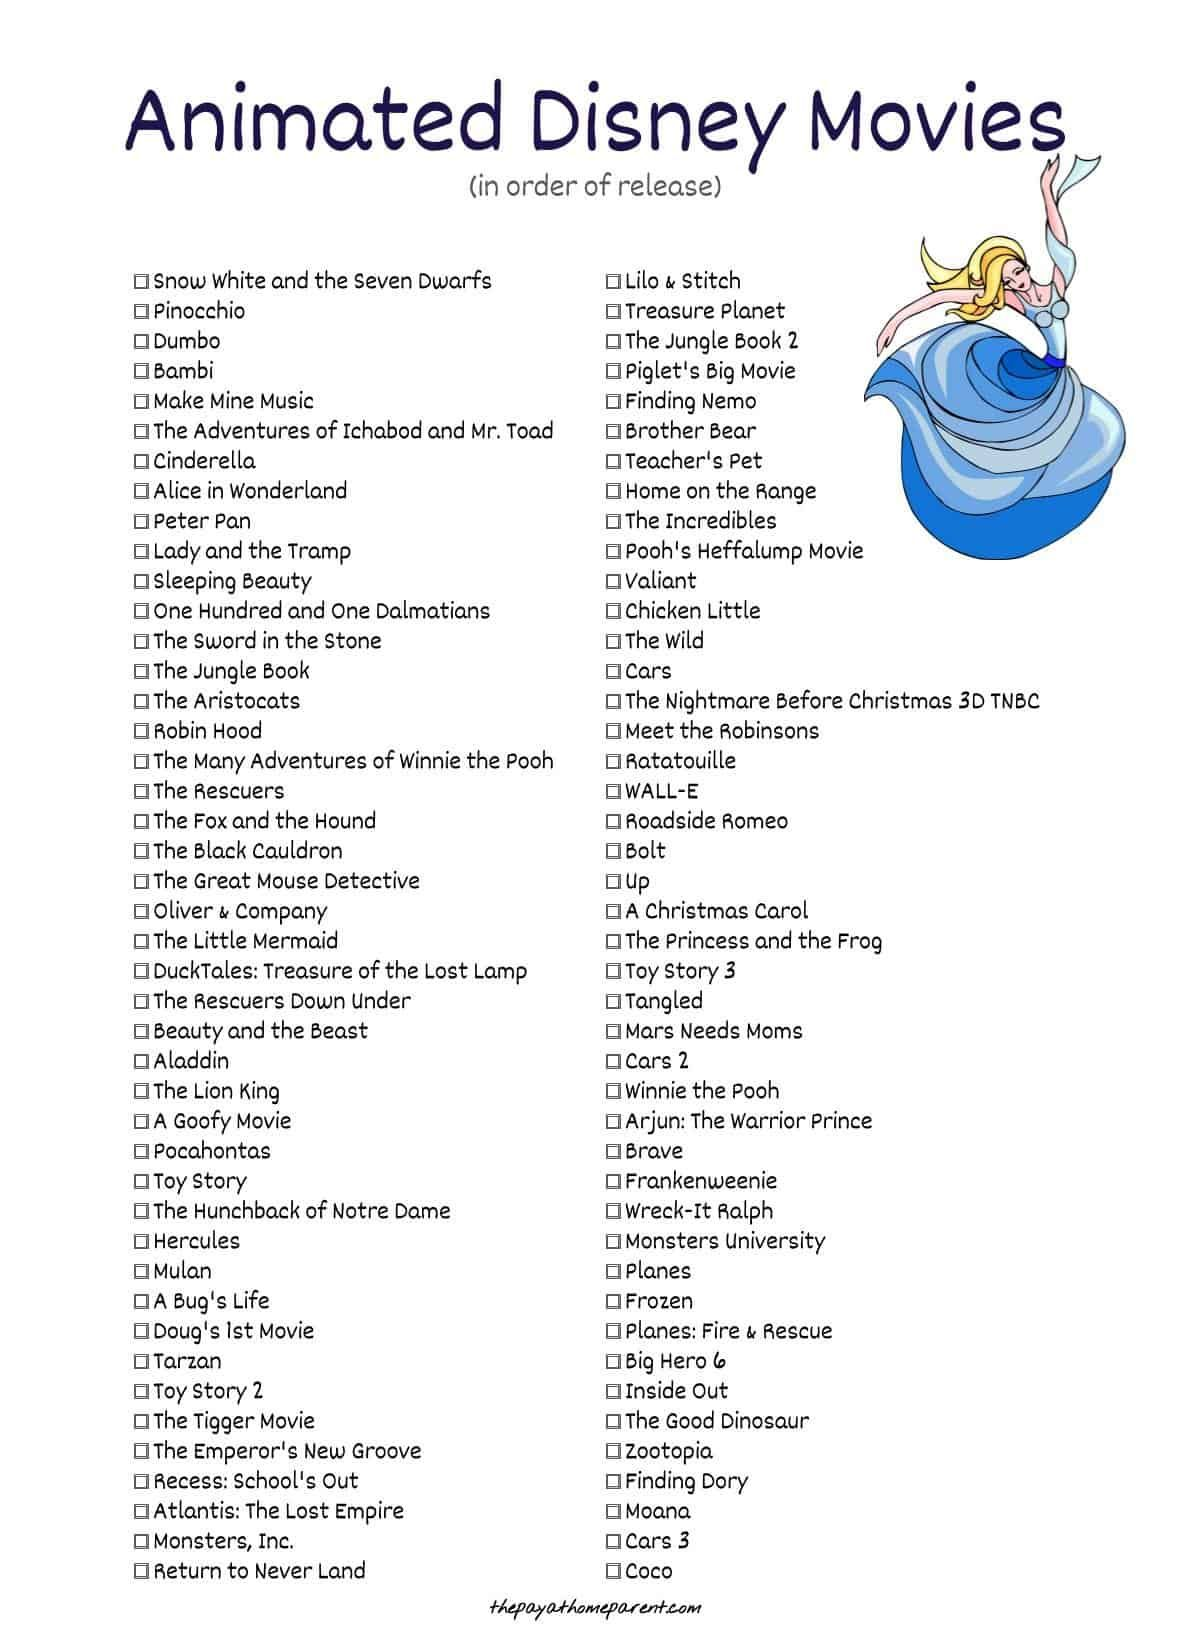 10 Must-see Disney Movie Checklists | KittyBabyLove.com